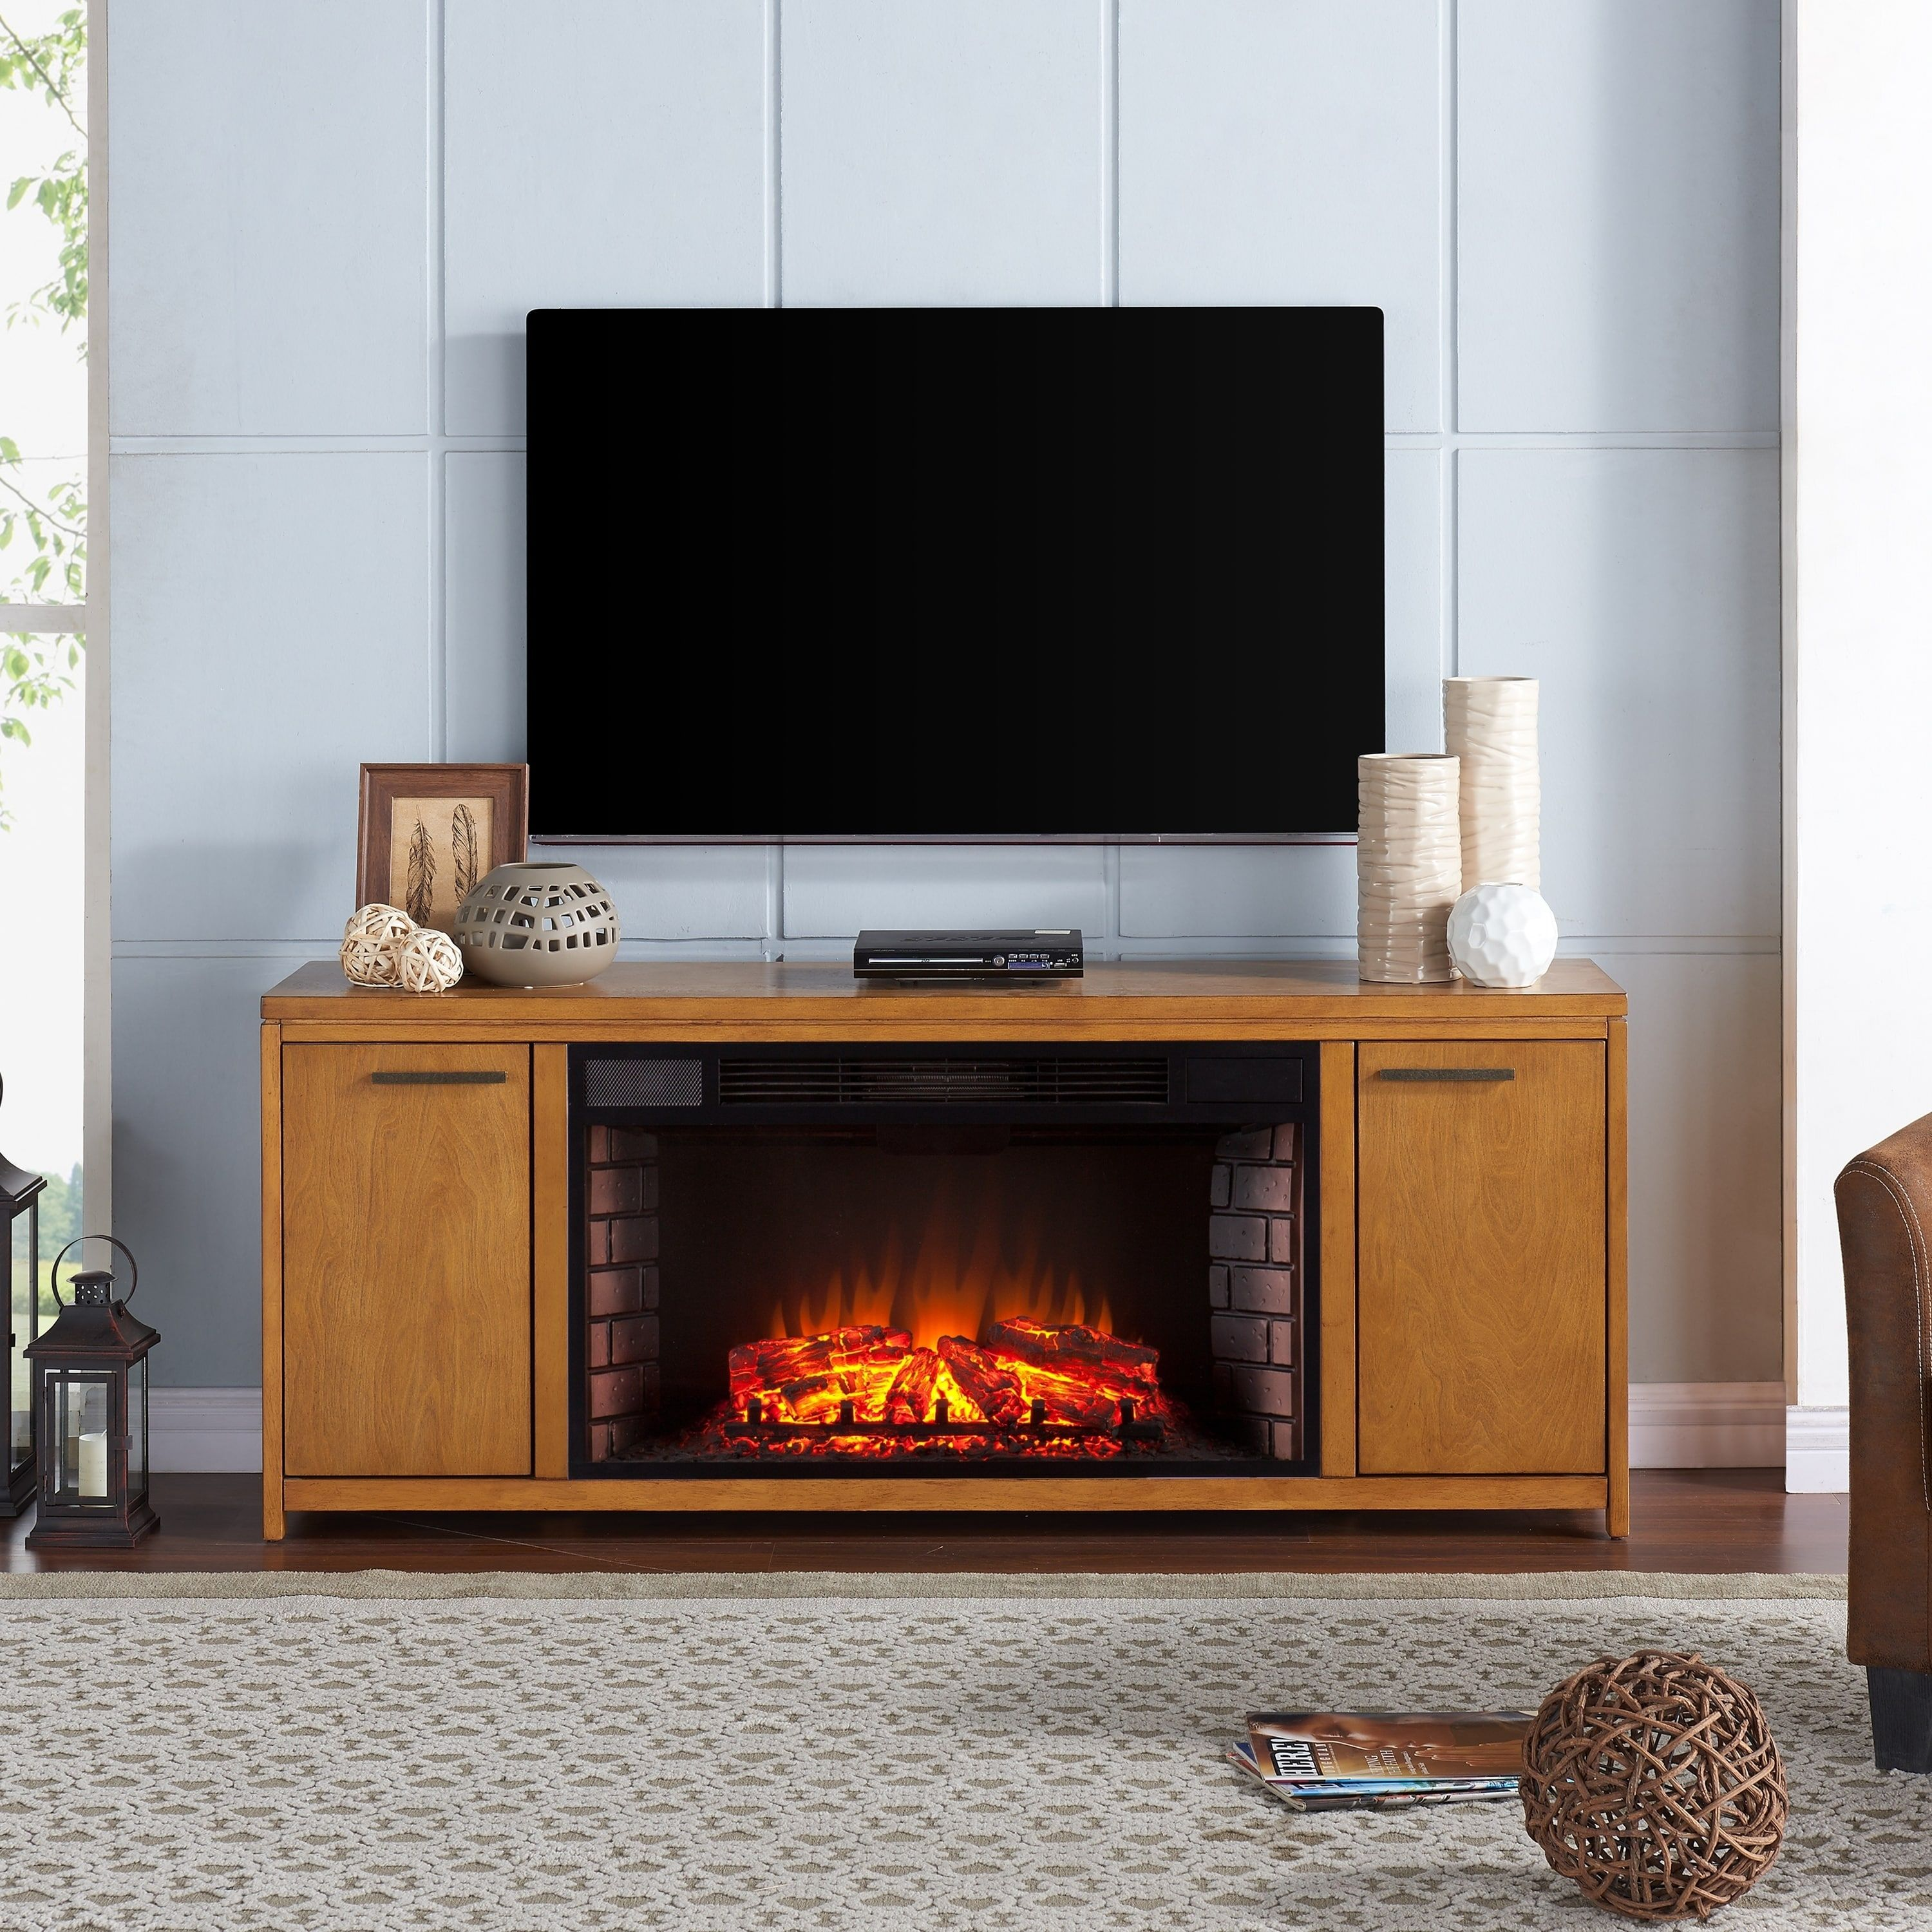 oak big sofa together tv ah stand as electric then ritzy fireplace carpet neat living buffet room furniture best and minimalist fireplaces with low irresistible vases wells cabinet for lots wooden